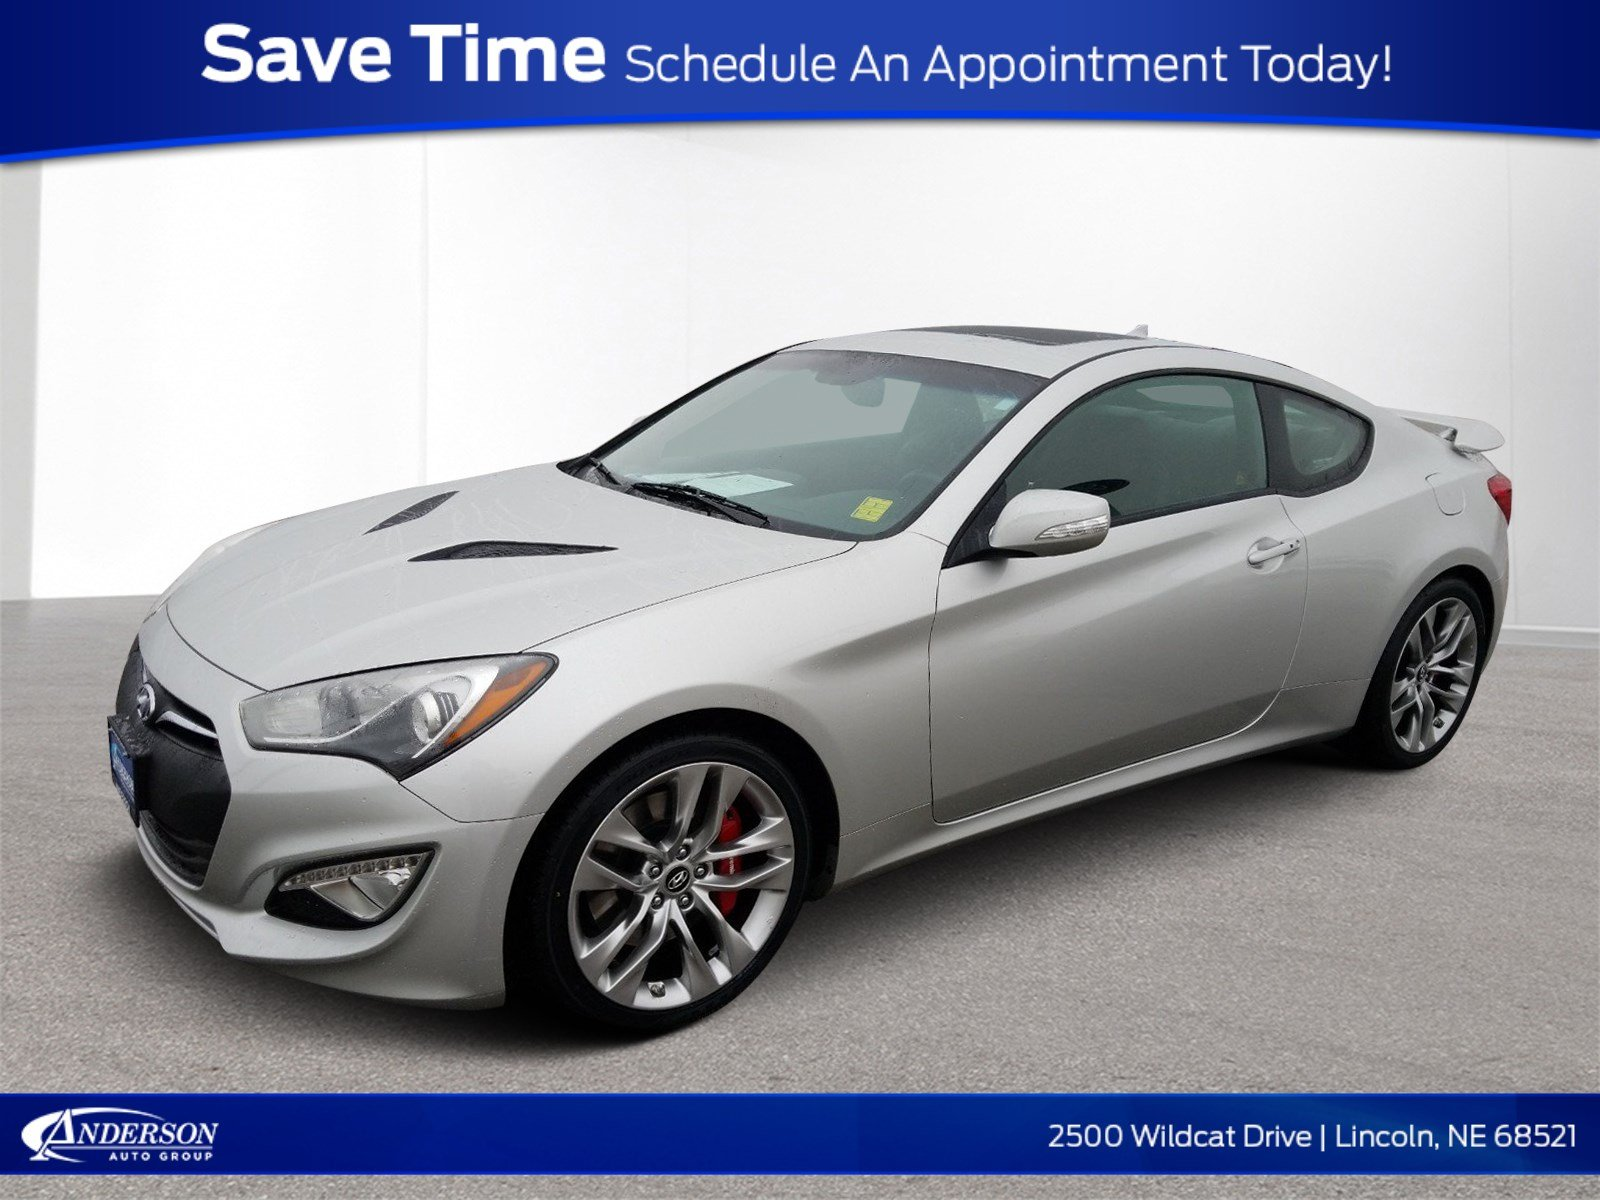 Pre-Owned 2013 Hyundai Genesis Coupe 3.8 Track